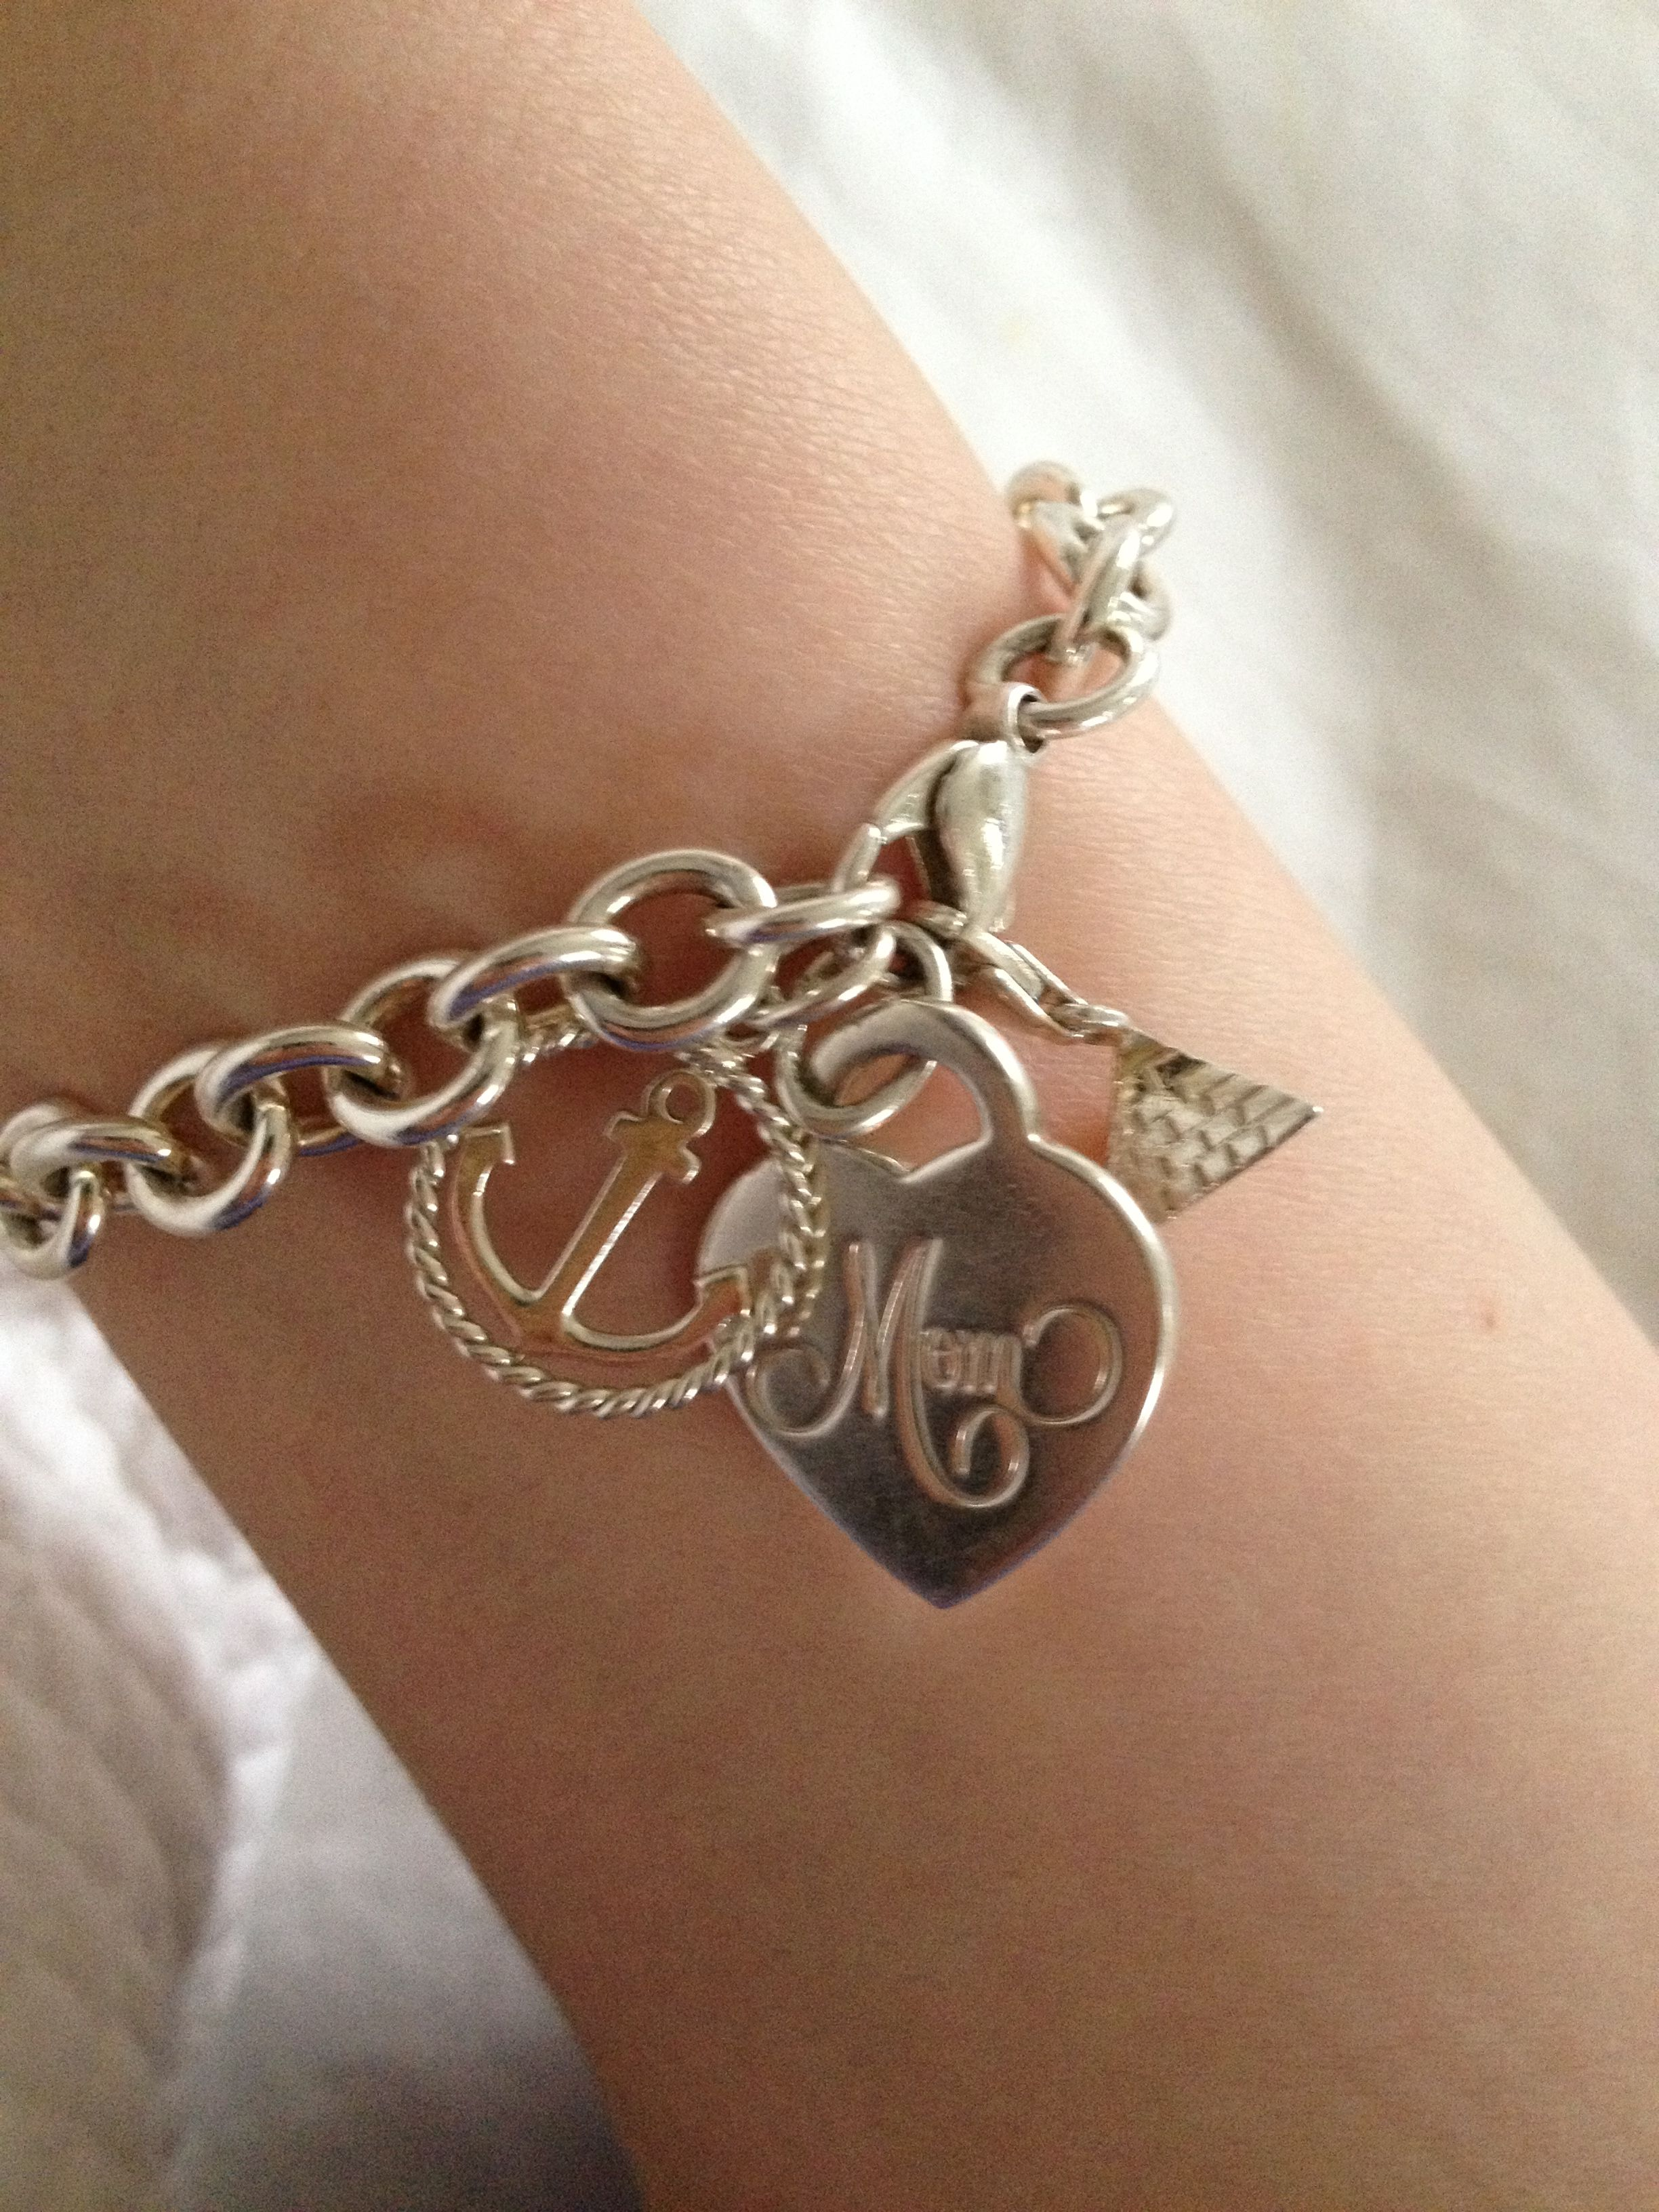 Tiffany's Mom Charm Bracelet I Would Add 2 Heart Charms With Nick And  Olivia's Name